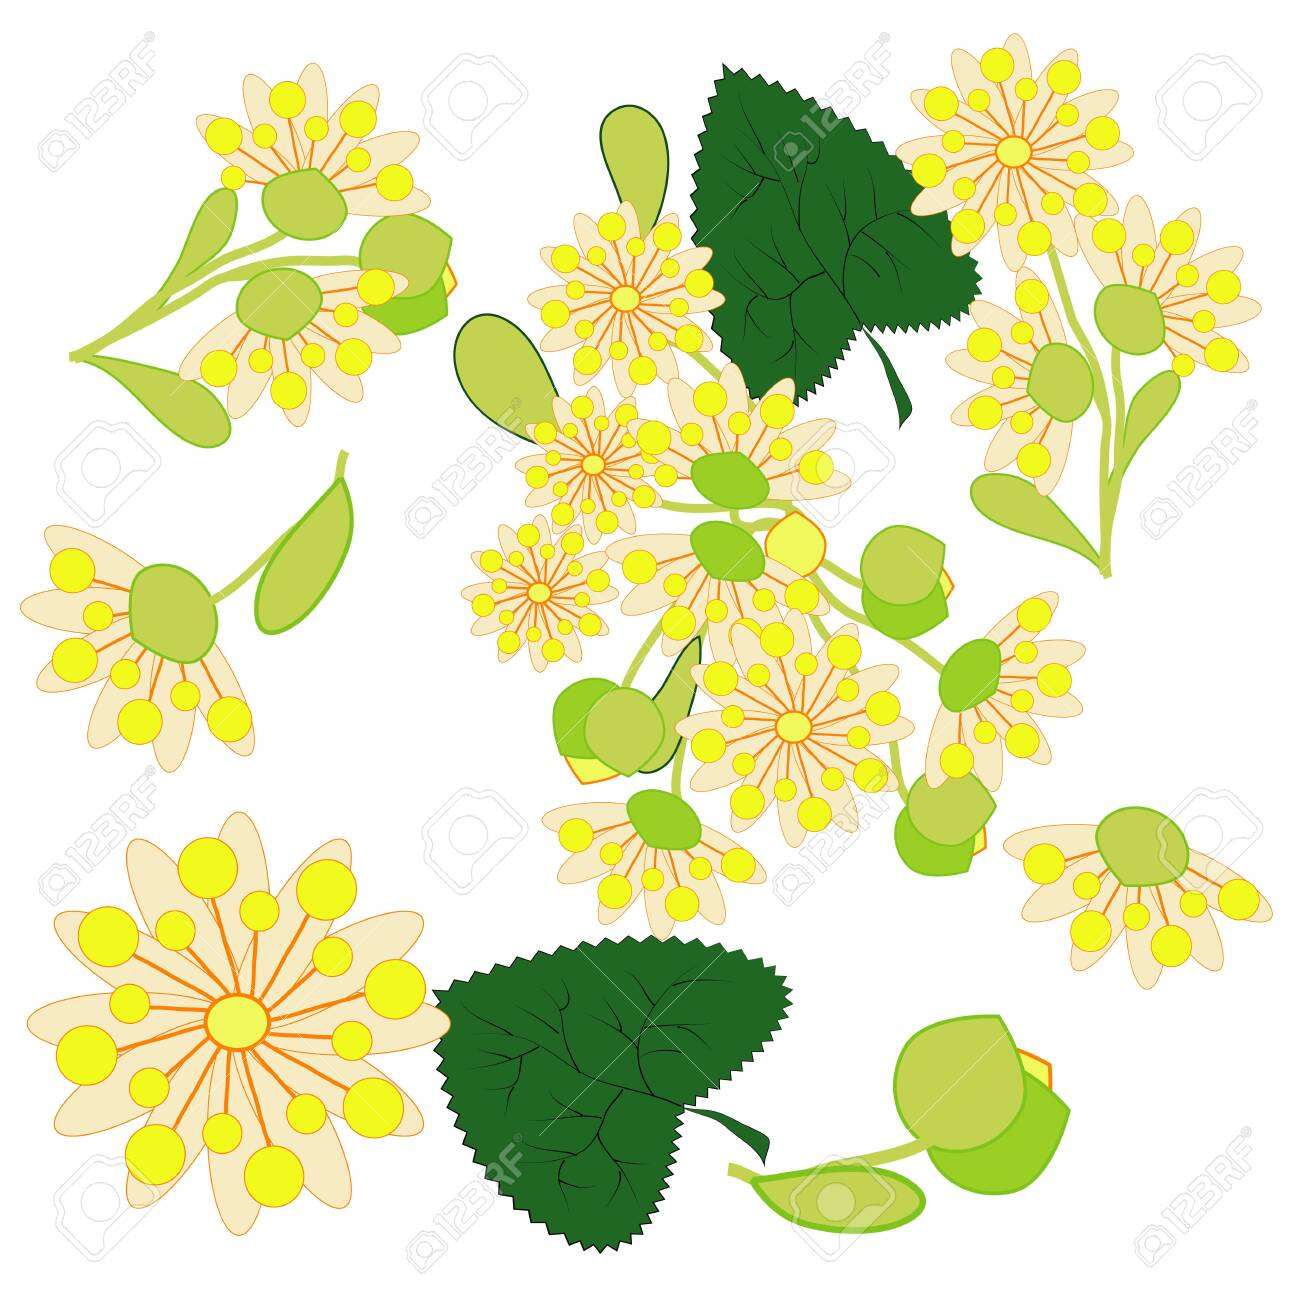 Hand drawn illustration of linden flowers, source of delicious honey and a fragrant herbal tea ingredient - 123274124